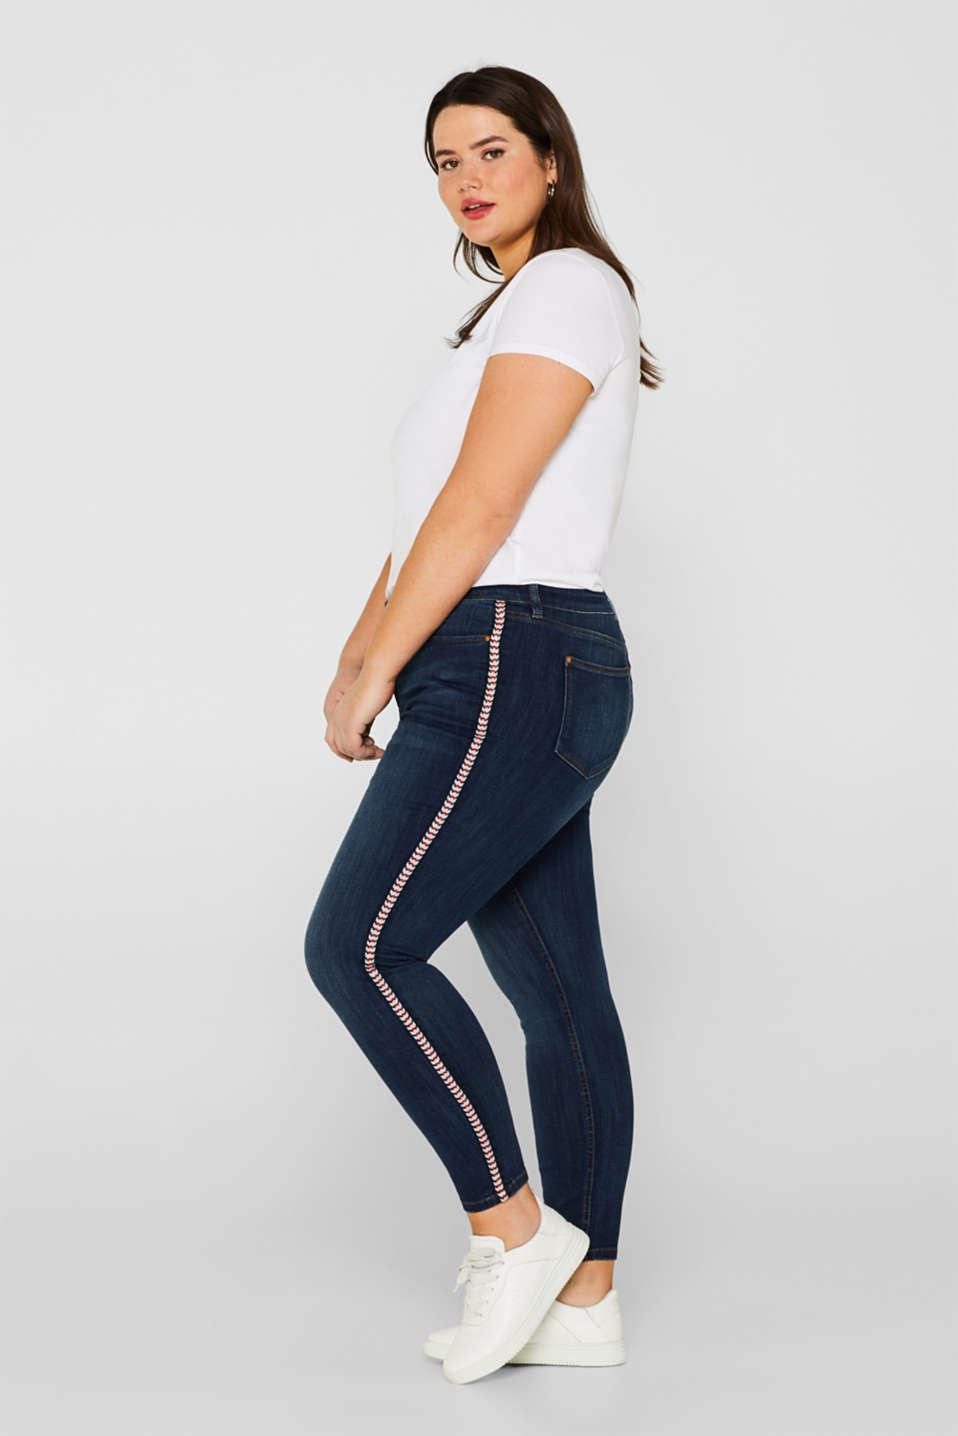 ESPRIT CURVES stretch jeans with decorative woven tape